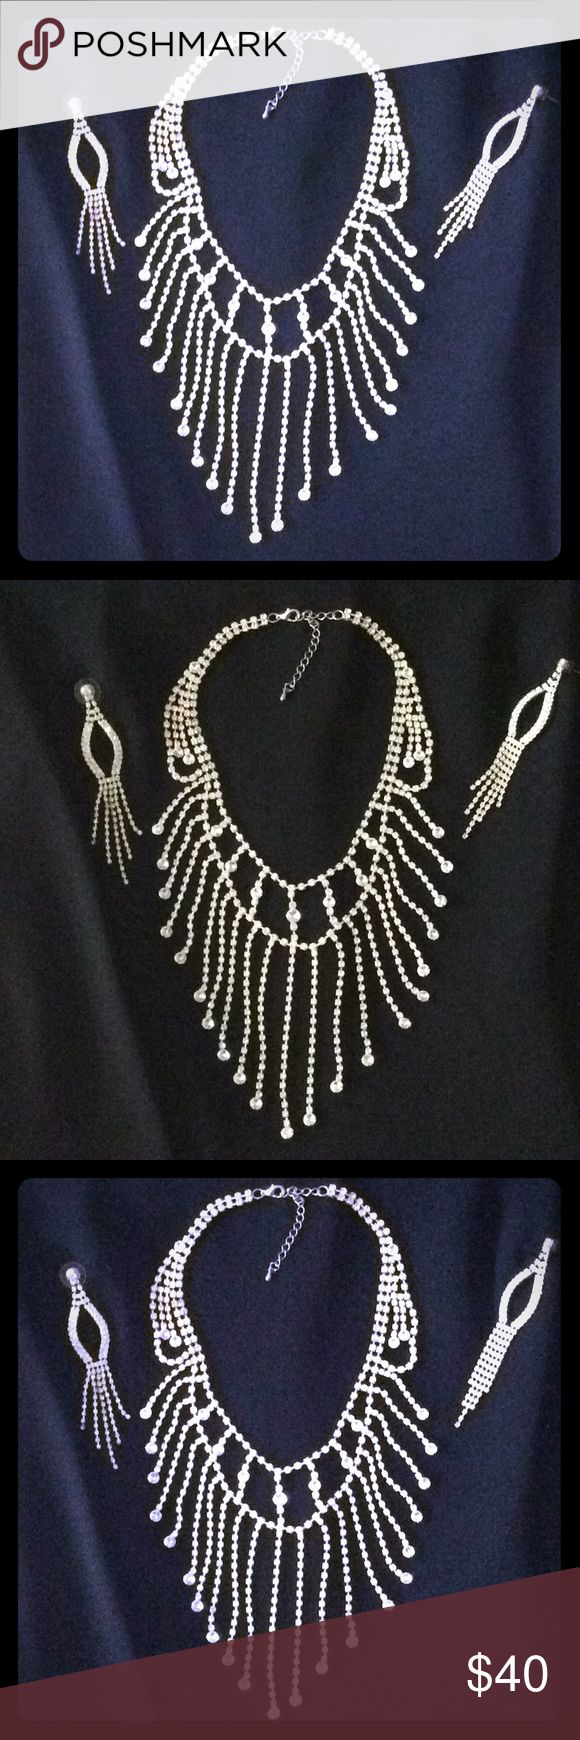 Rhinestone Necklace Beautiful Draping rhinestone necklace. Perfect for weddings, prom, homecoming, elegant occasions.  You will definitely stand out from the crowd. Jewelry Necklaces